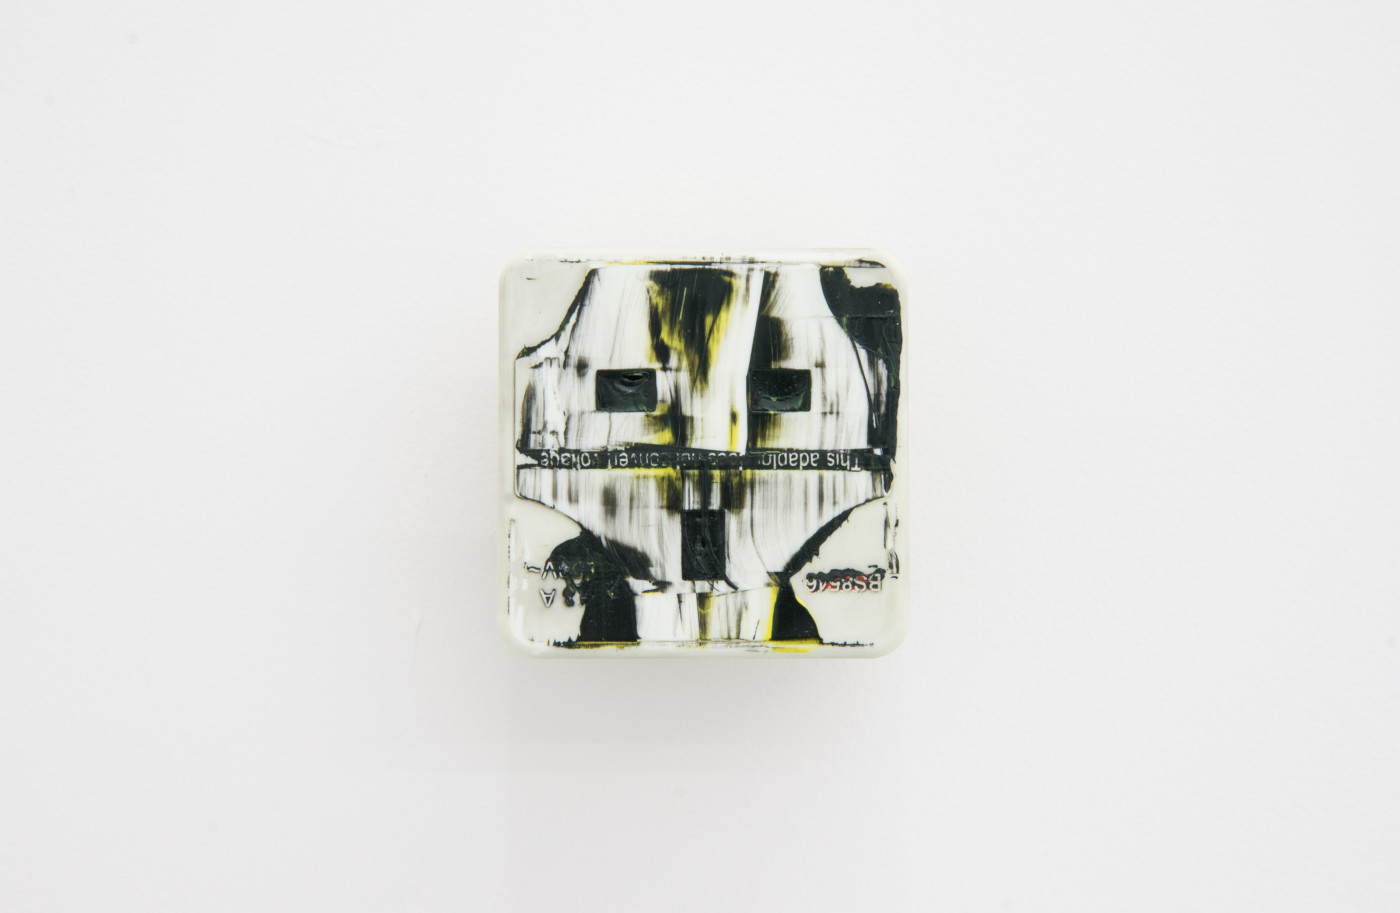 KEITH FARQUHAR  Scream #6</I>, 2019 Oil on travel adaptor 6 x 6 x 4,6 cm / 2.3 x 2.3 x 1.8 in